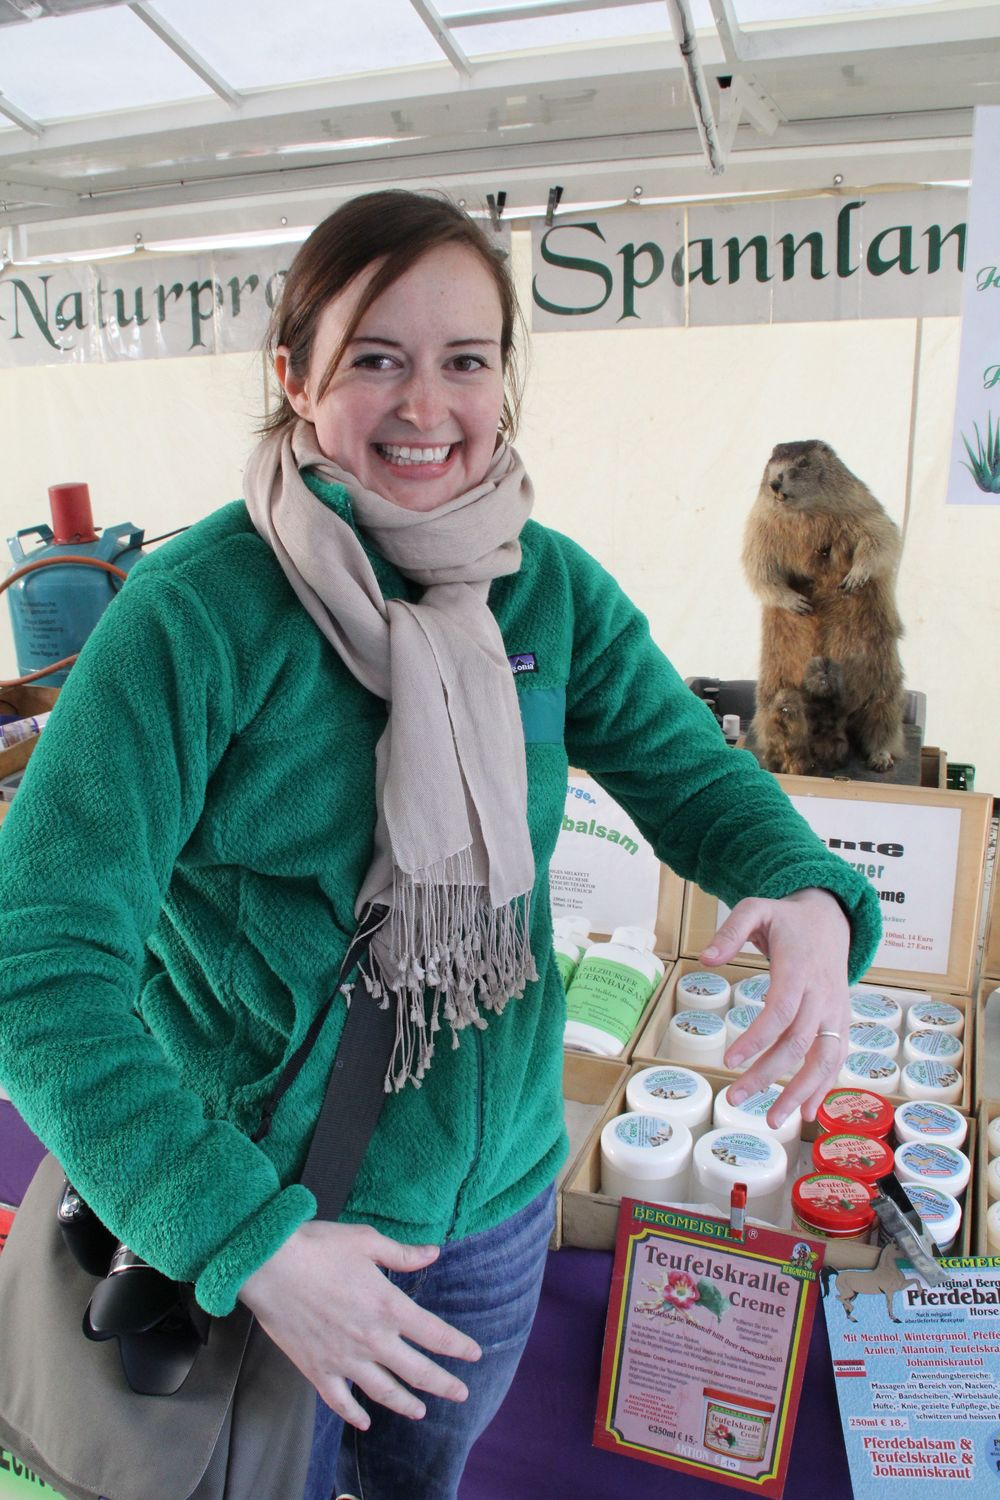 Pretty fricking pumped about buying some marmot oil salve at the Universitätsplatz Grünmarkt. This vendor also sells at the weekly market near Mirabell Gardens. I have been in love with their taxidermied marmot since 2002.